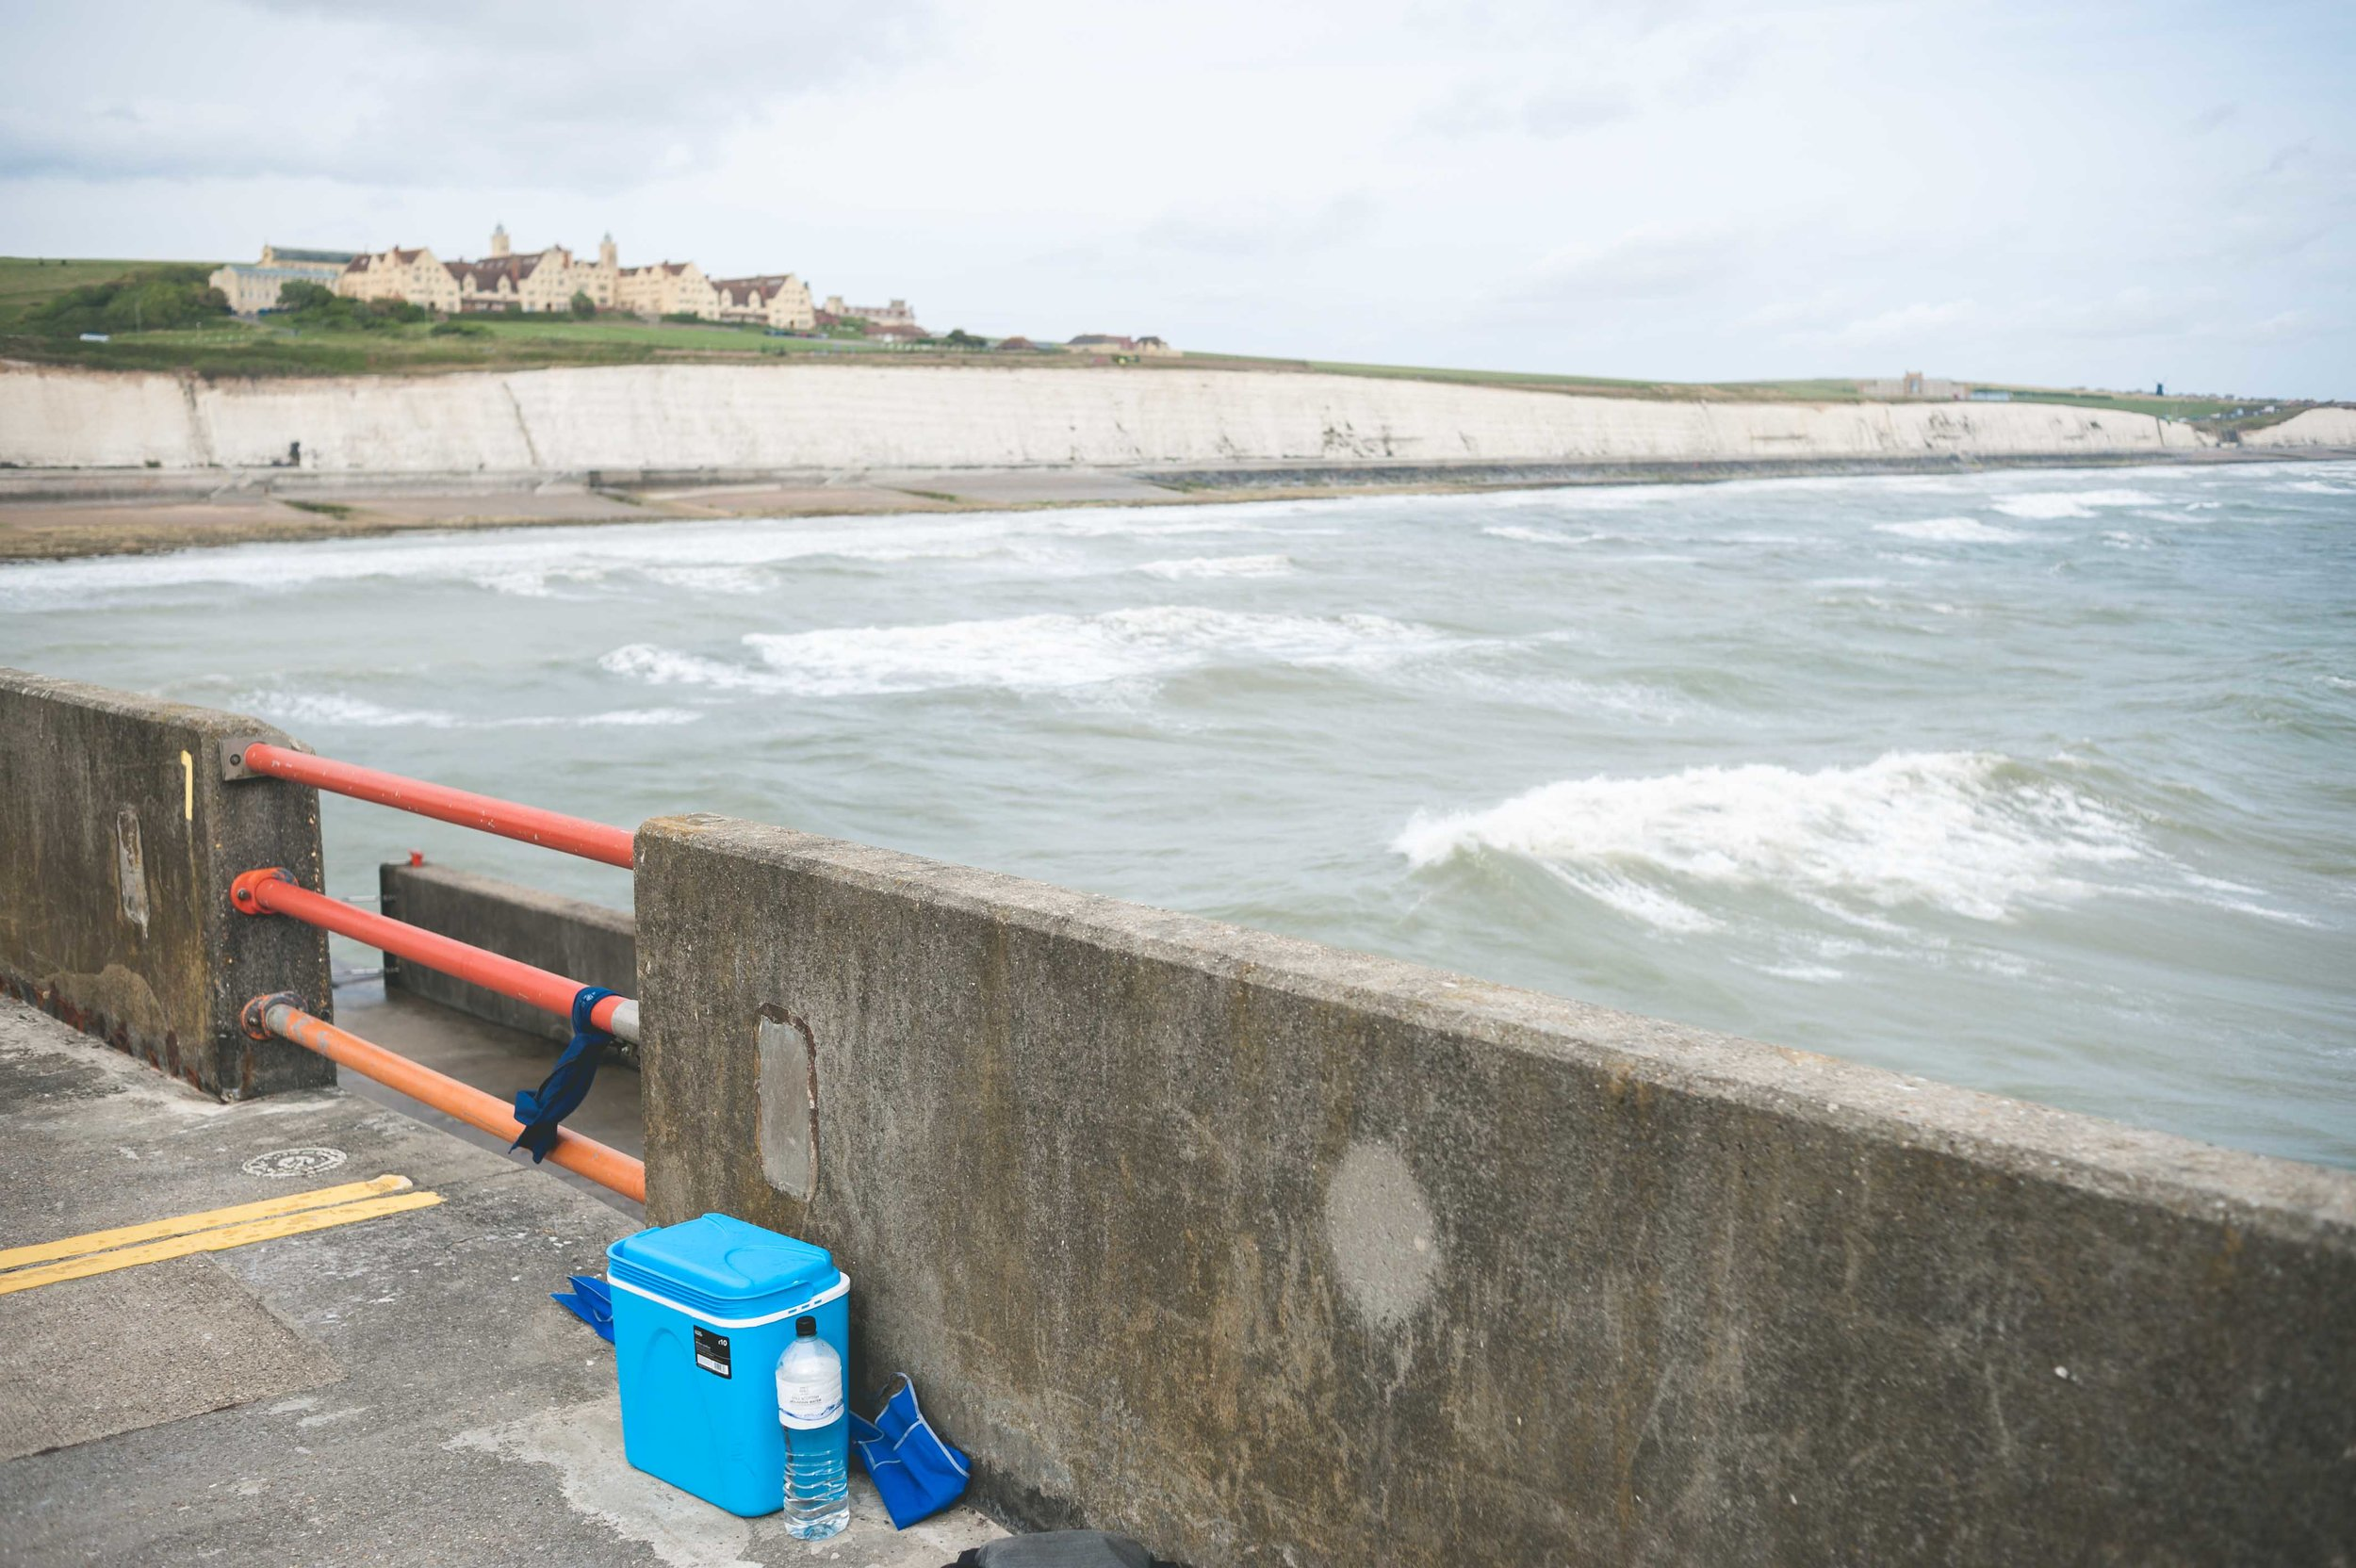 brighton-marina-eastwall-surf-pier